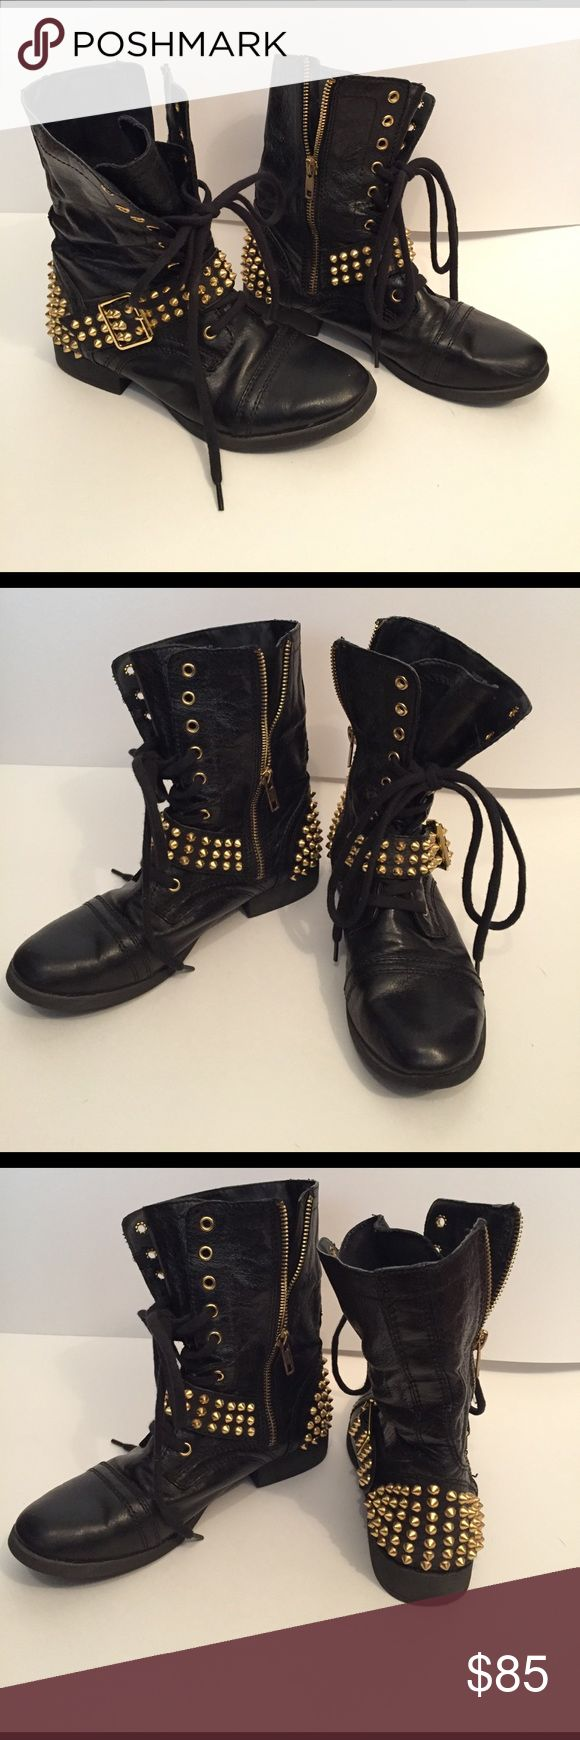 Gold-Studded Black Leather Combat Boots Style name is Ternn.  100% Leather upper and bottom soles are synthetic rubber for extra cushion.  Lace up style combat boot with gold side zipper.  Gently worn with very little visible wear to soles (see photos for reference).  This style is very hard to find these days.  Believe they originally were $150 brand new. Steve Madden Shoes Combat & Moto Boots